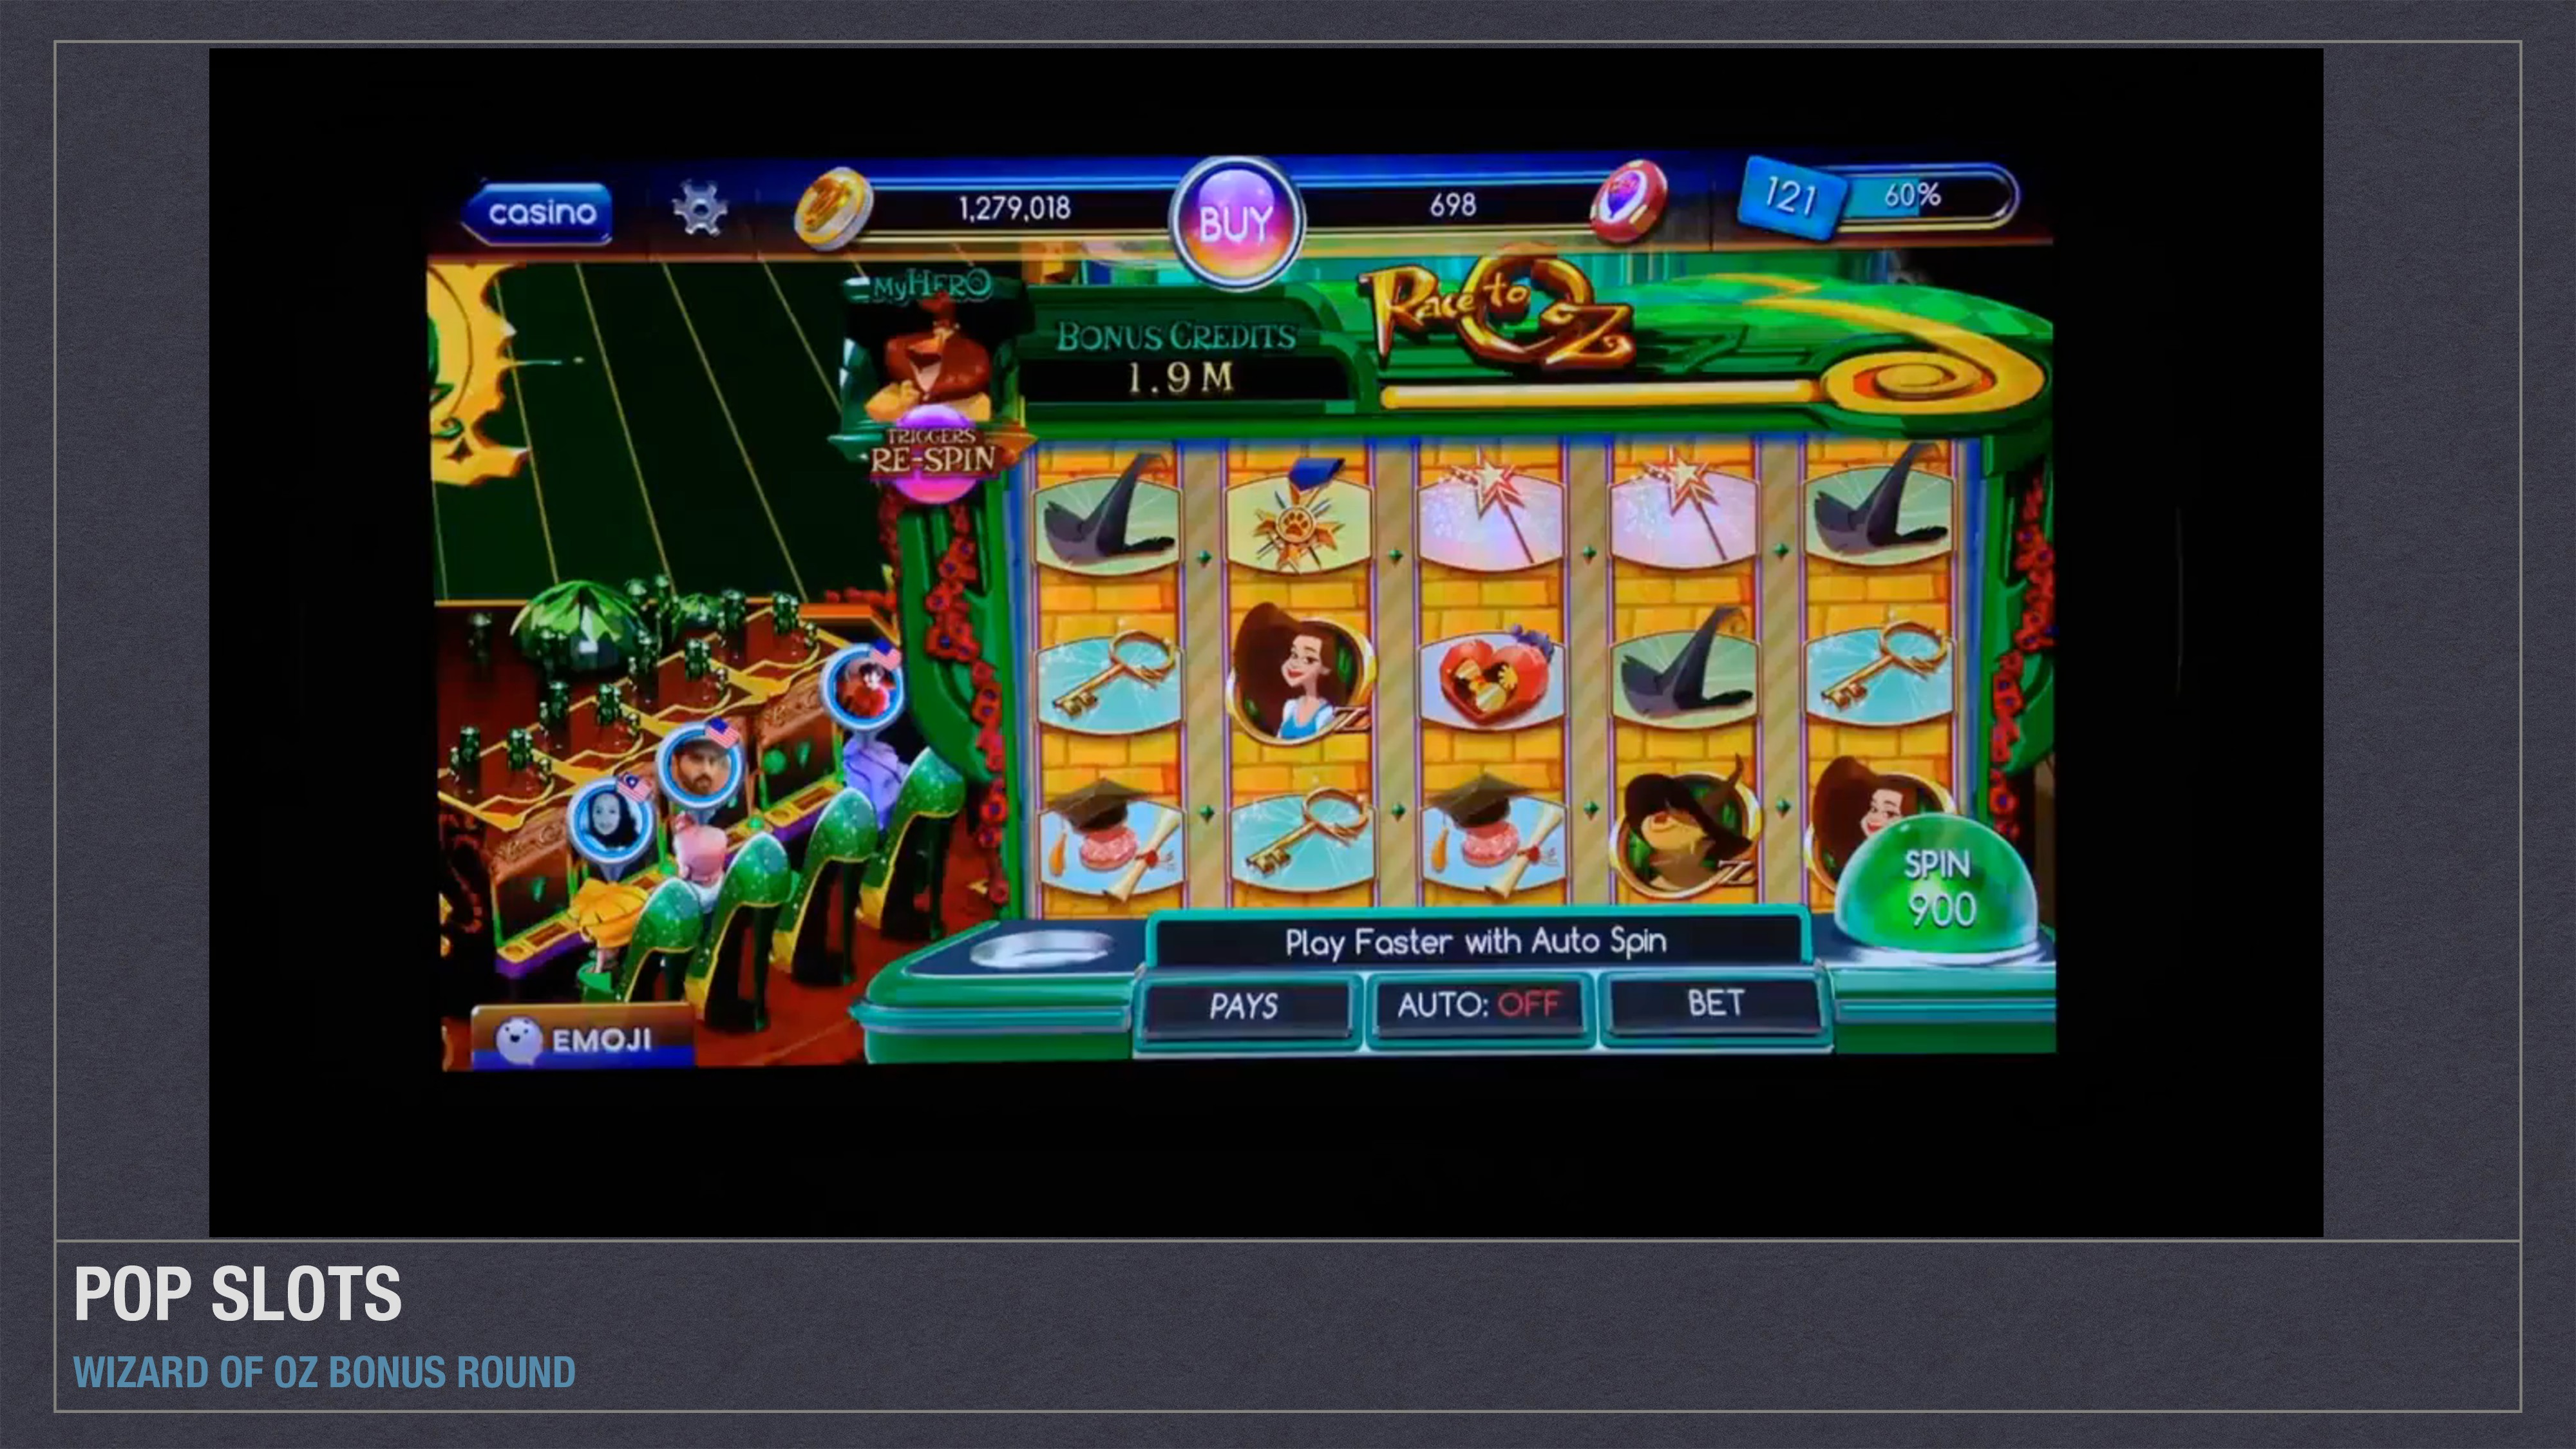 POP SLOTS WIZARD OF OZ BONUS ROUND